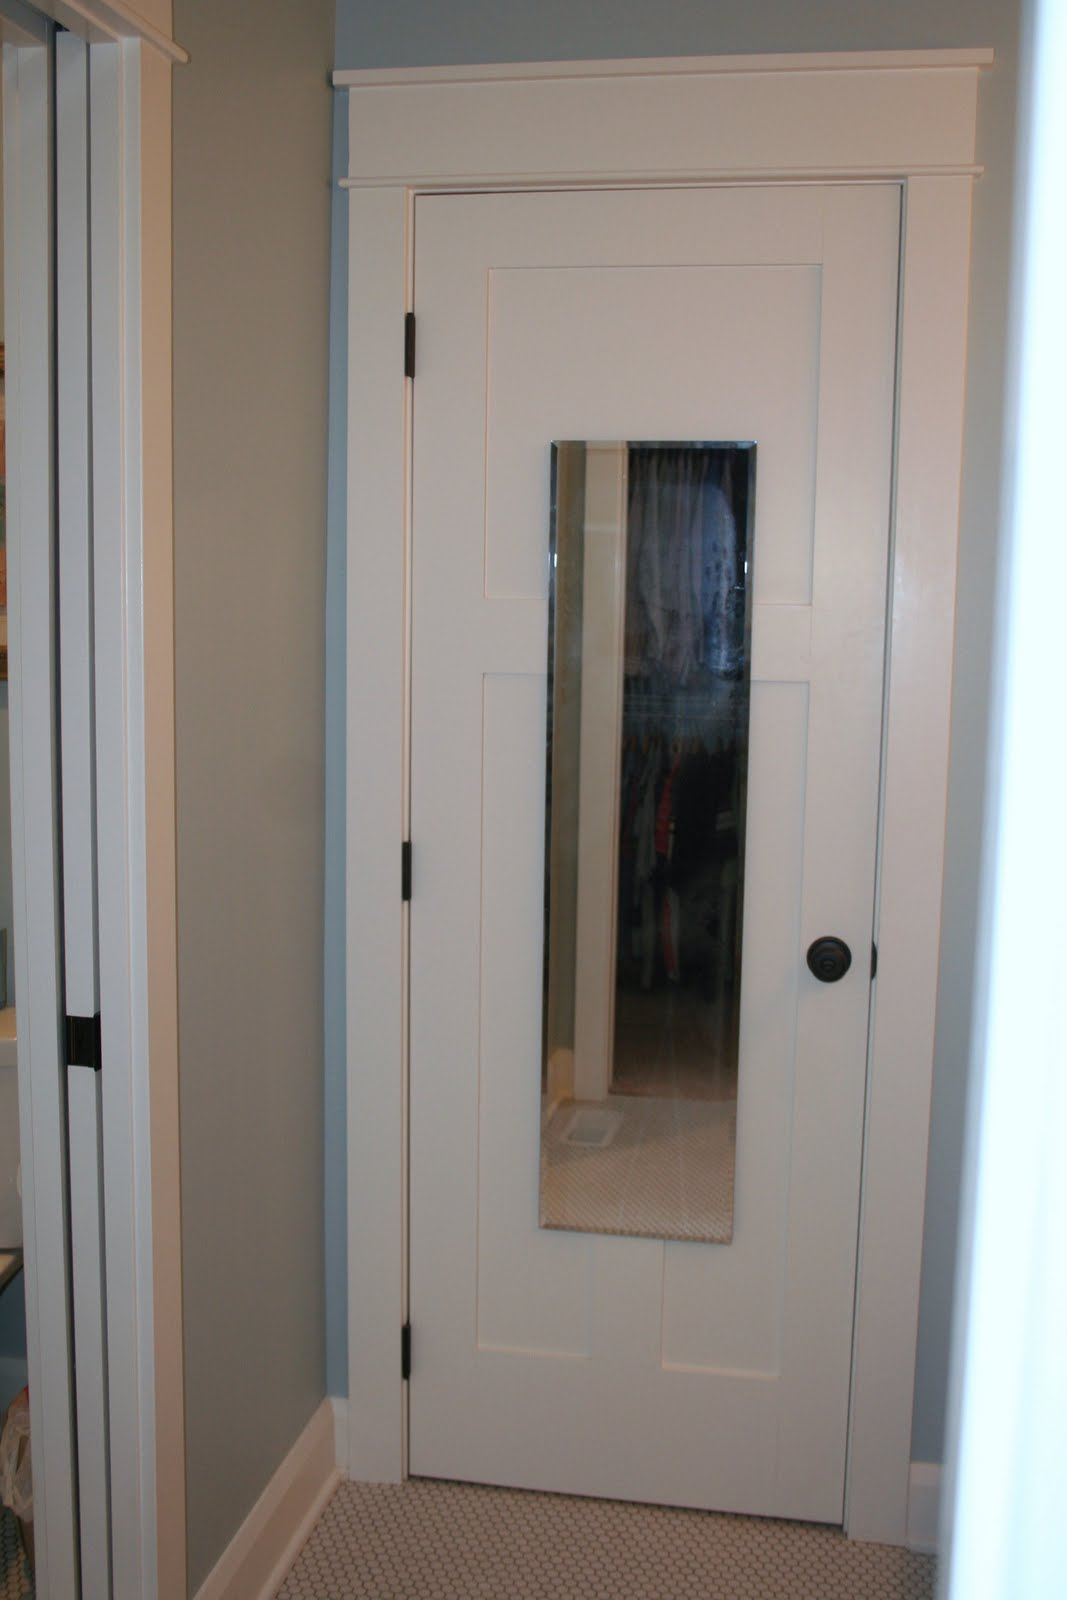 Stuck on Hue: Hanging a Full-Length Mirror in the Bathroom